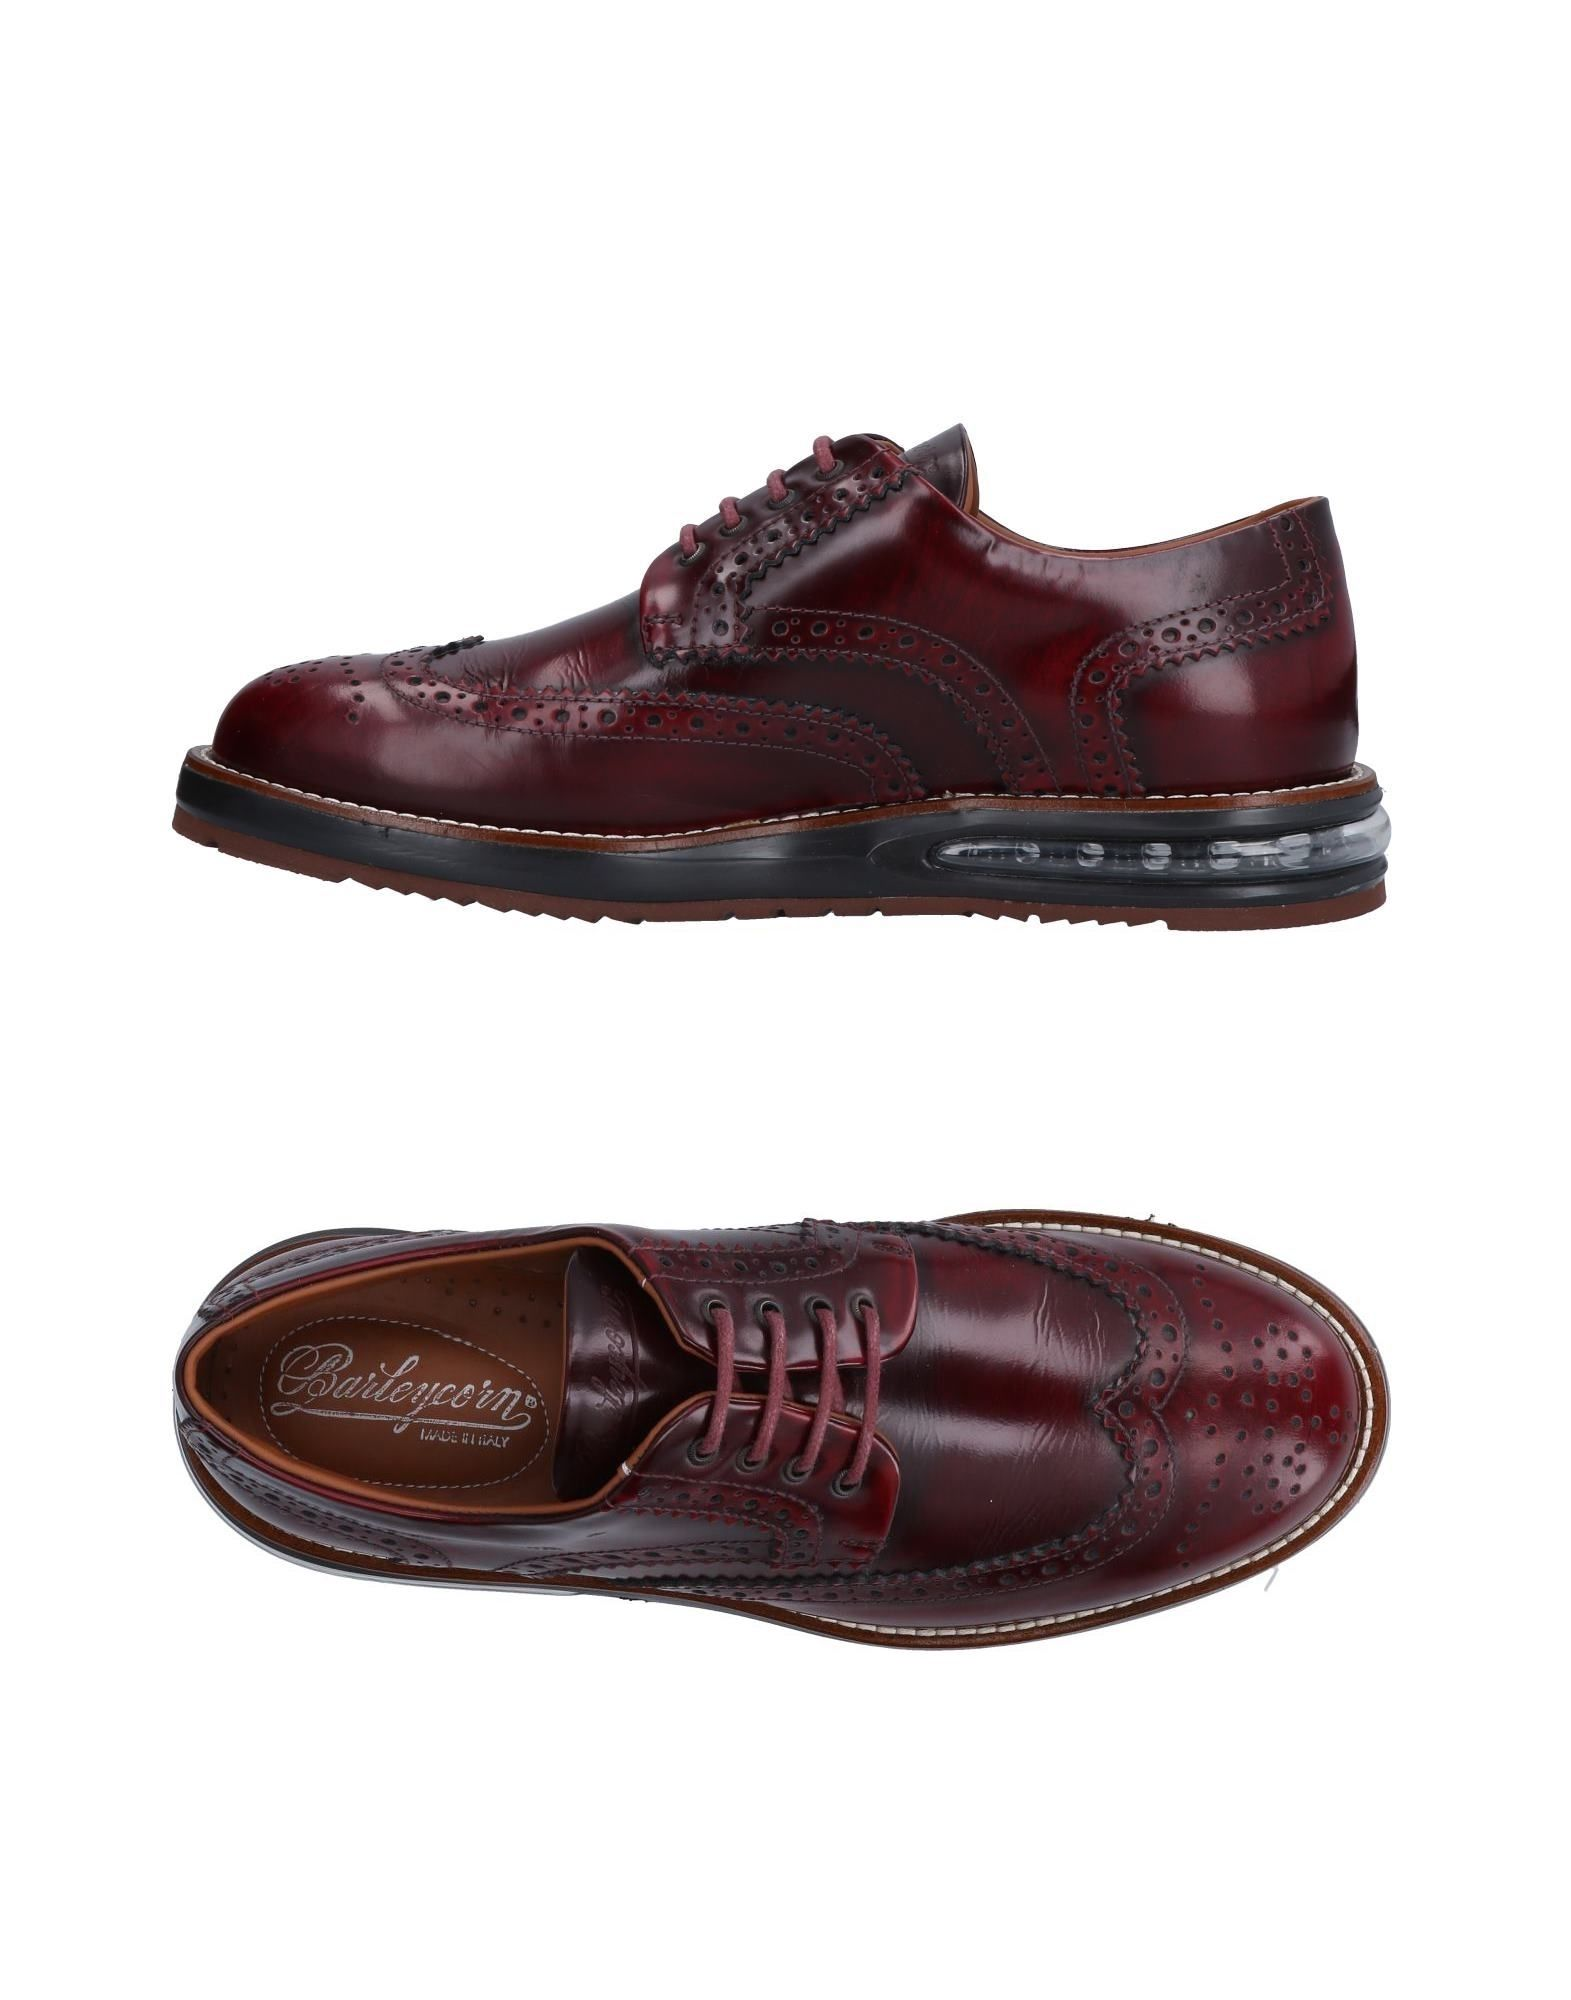 BARLEYCORN Laced Shoes in Brick Red